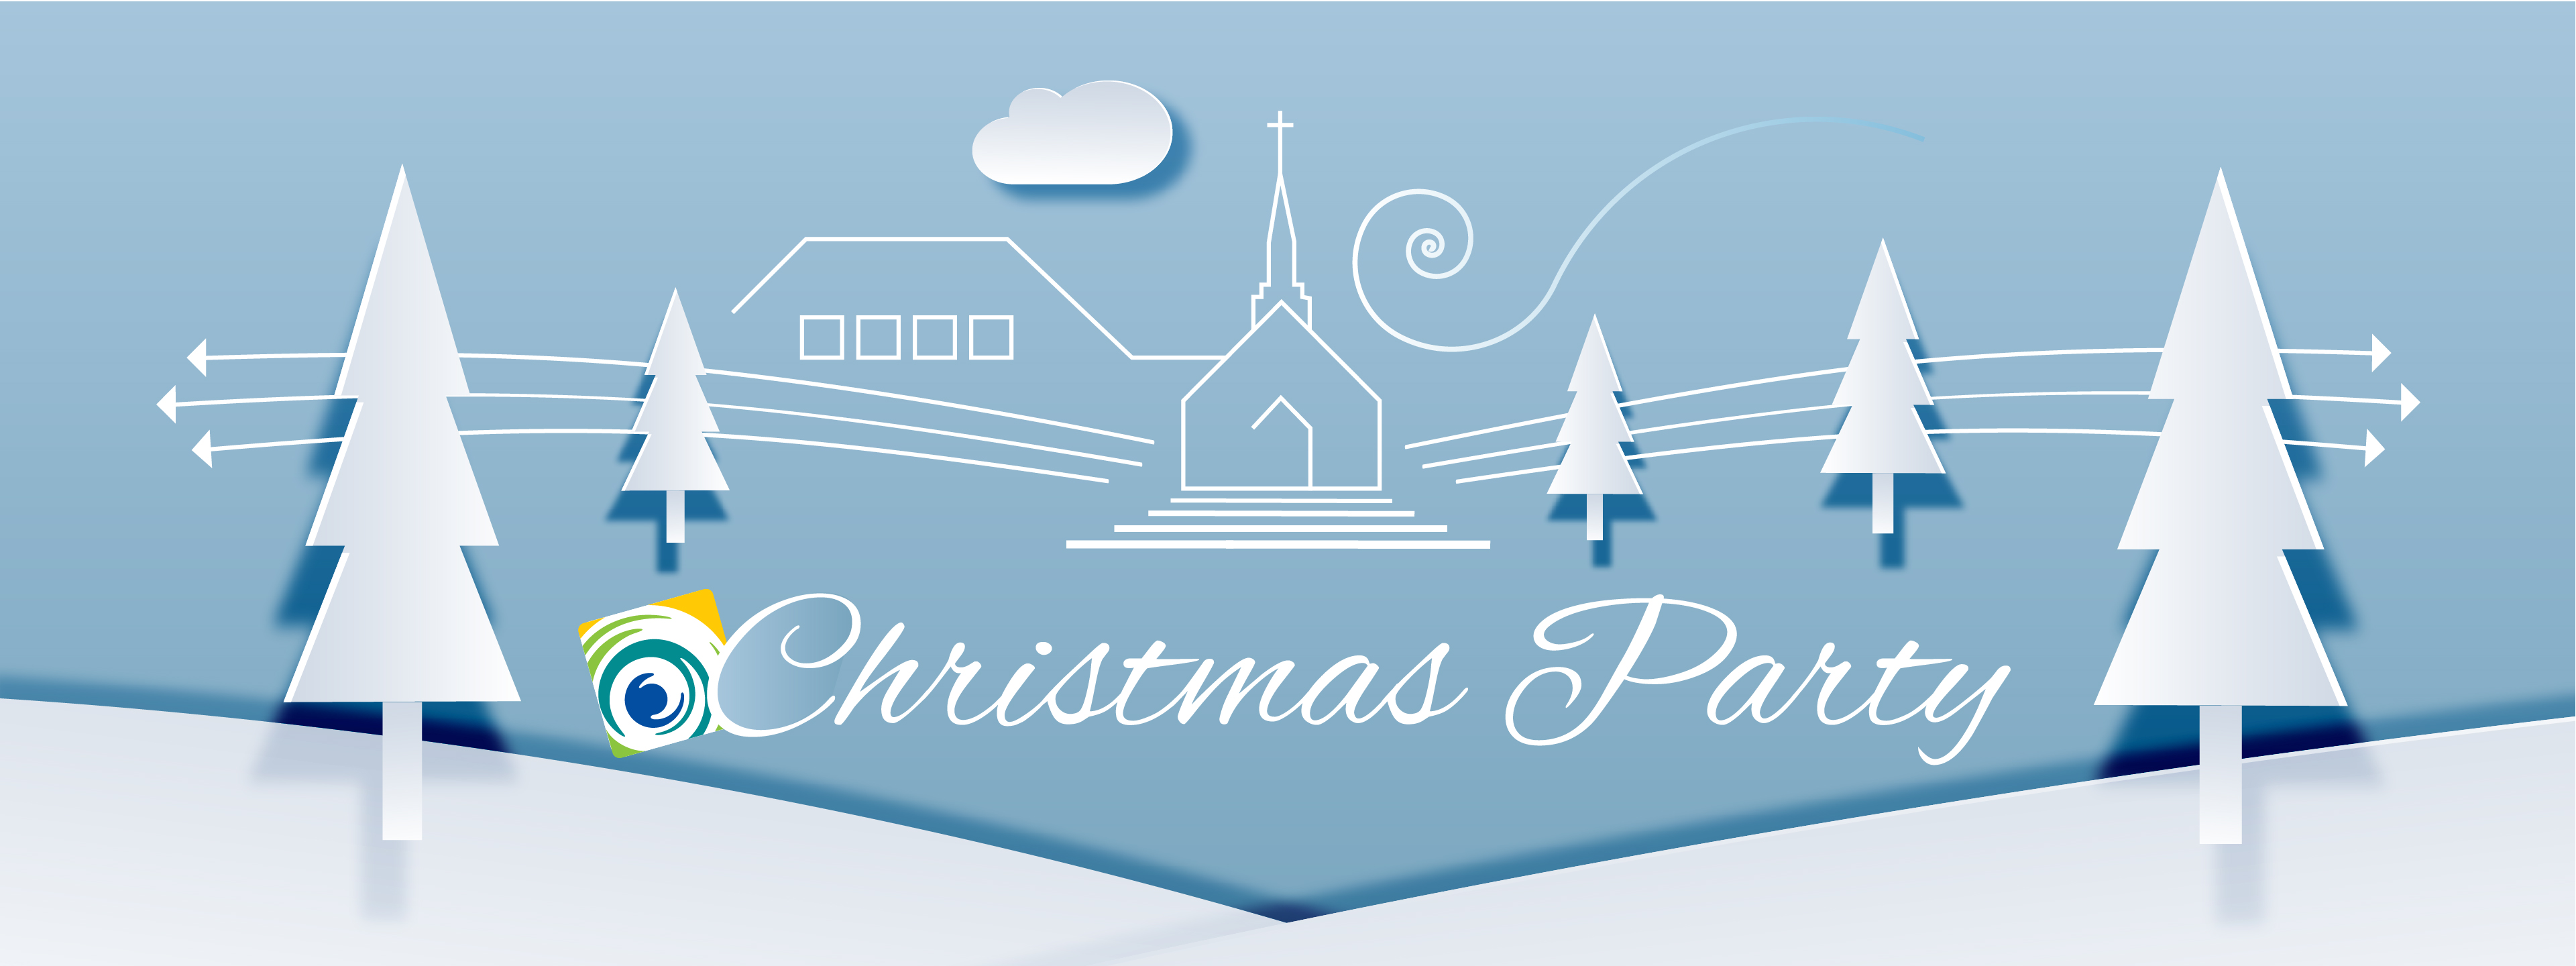 christmas-party-4brd-dq2018-web-banner